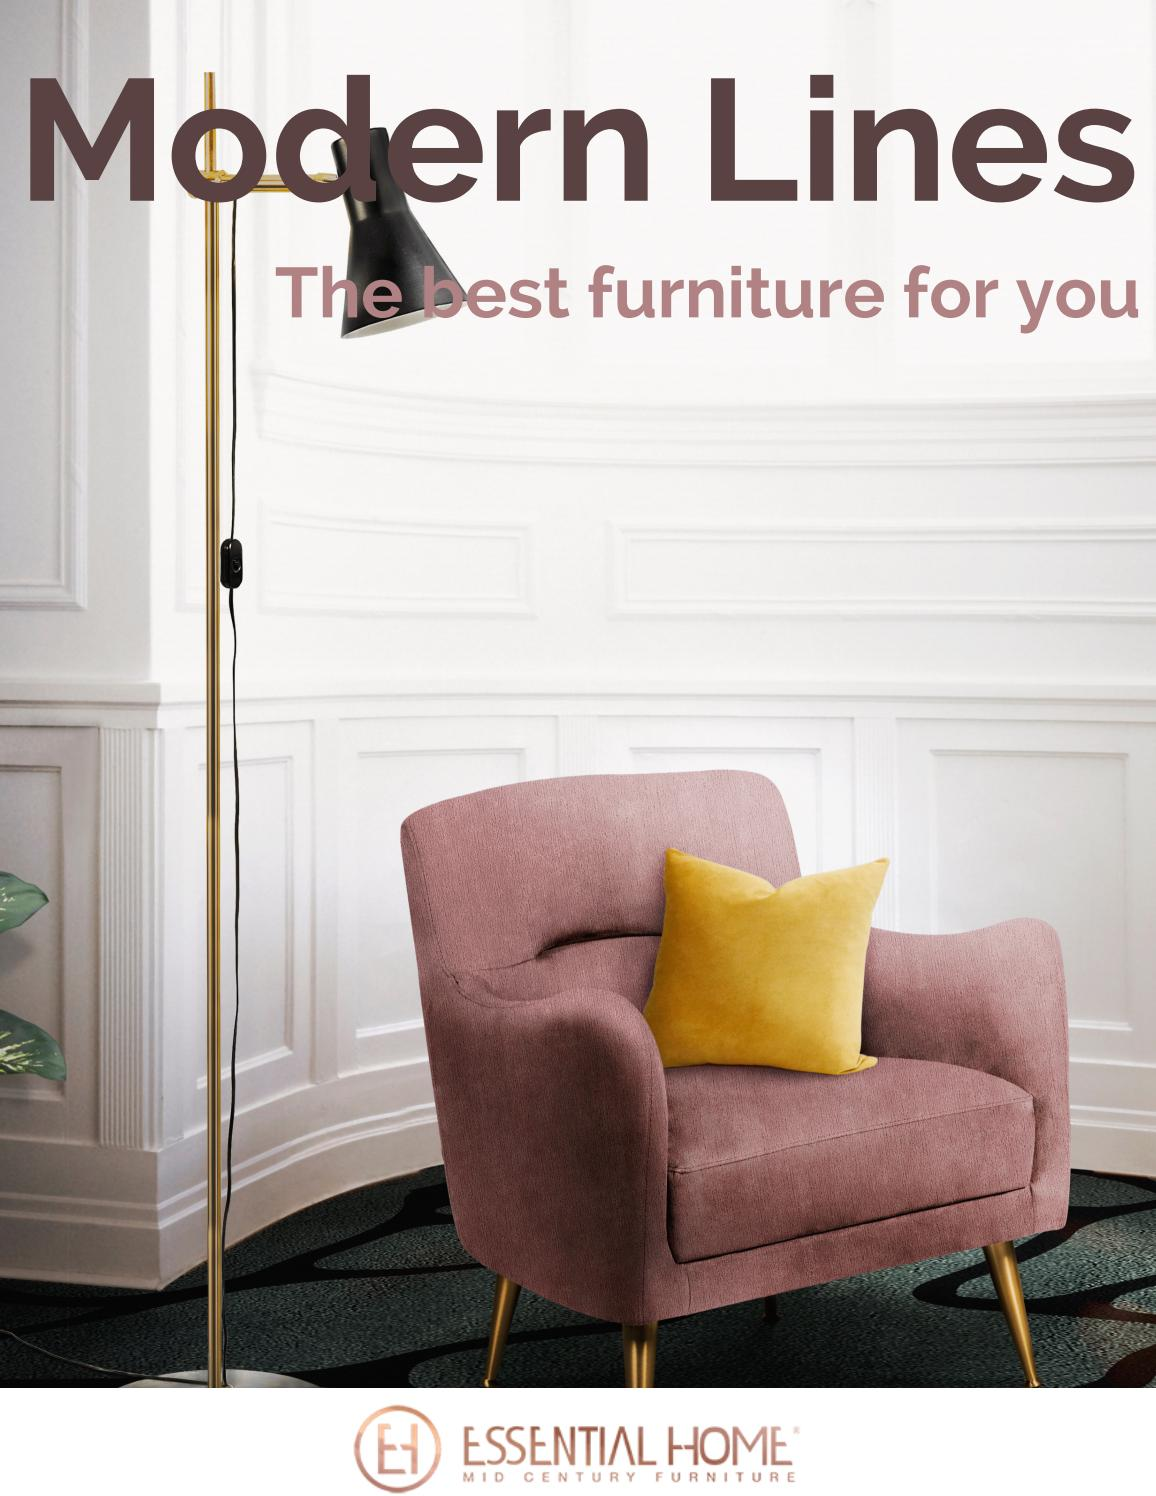 Best Chairs Ferdinand In The Best Modern Lines To Your Furniture By Essential Home Issuu